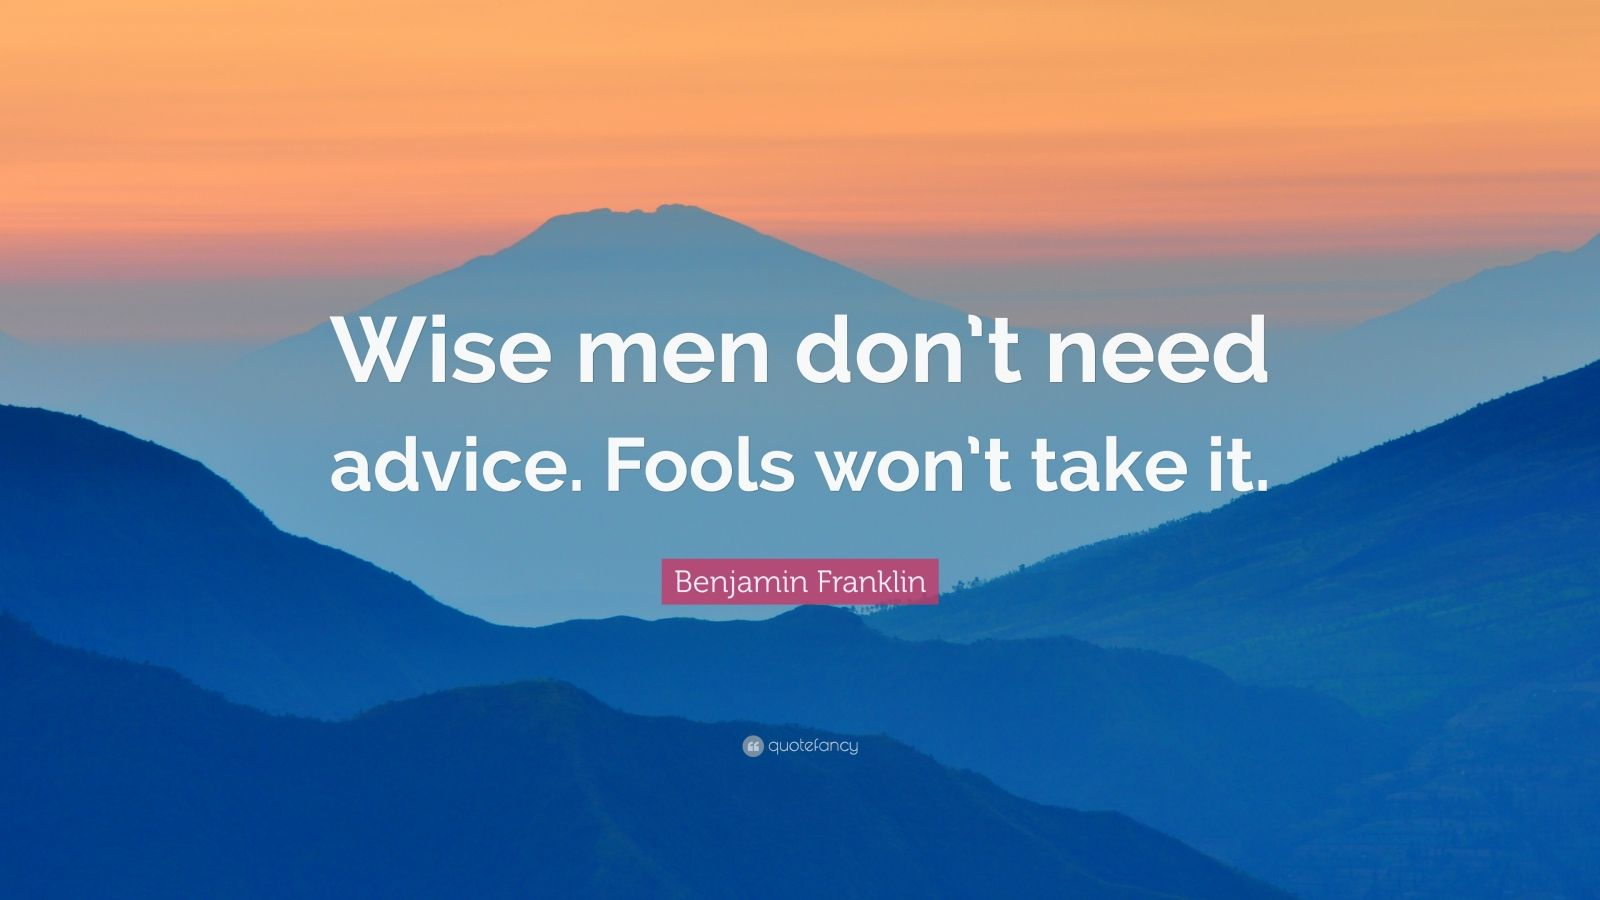 """Benjamin Franklin Quote: """"Wise men don't need advice. Fools won't take it."""""""